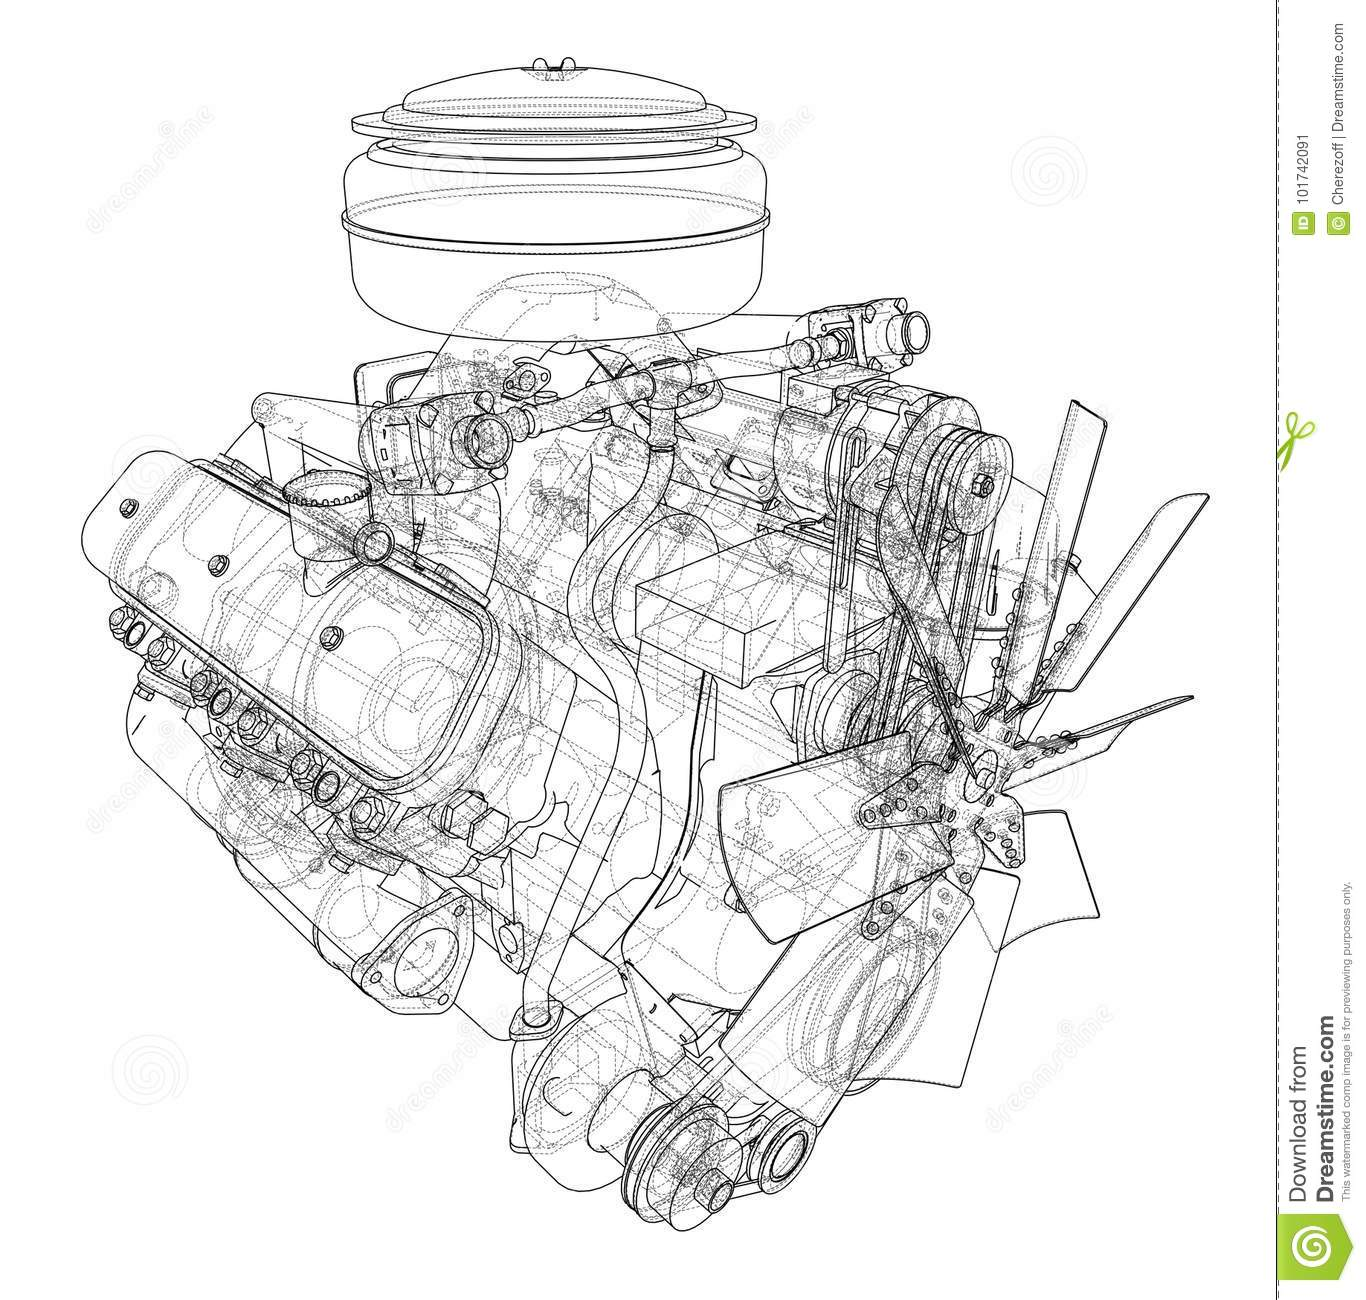 Engine Sketch Vector Stock Vector Illustration Of Draw